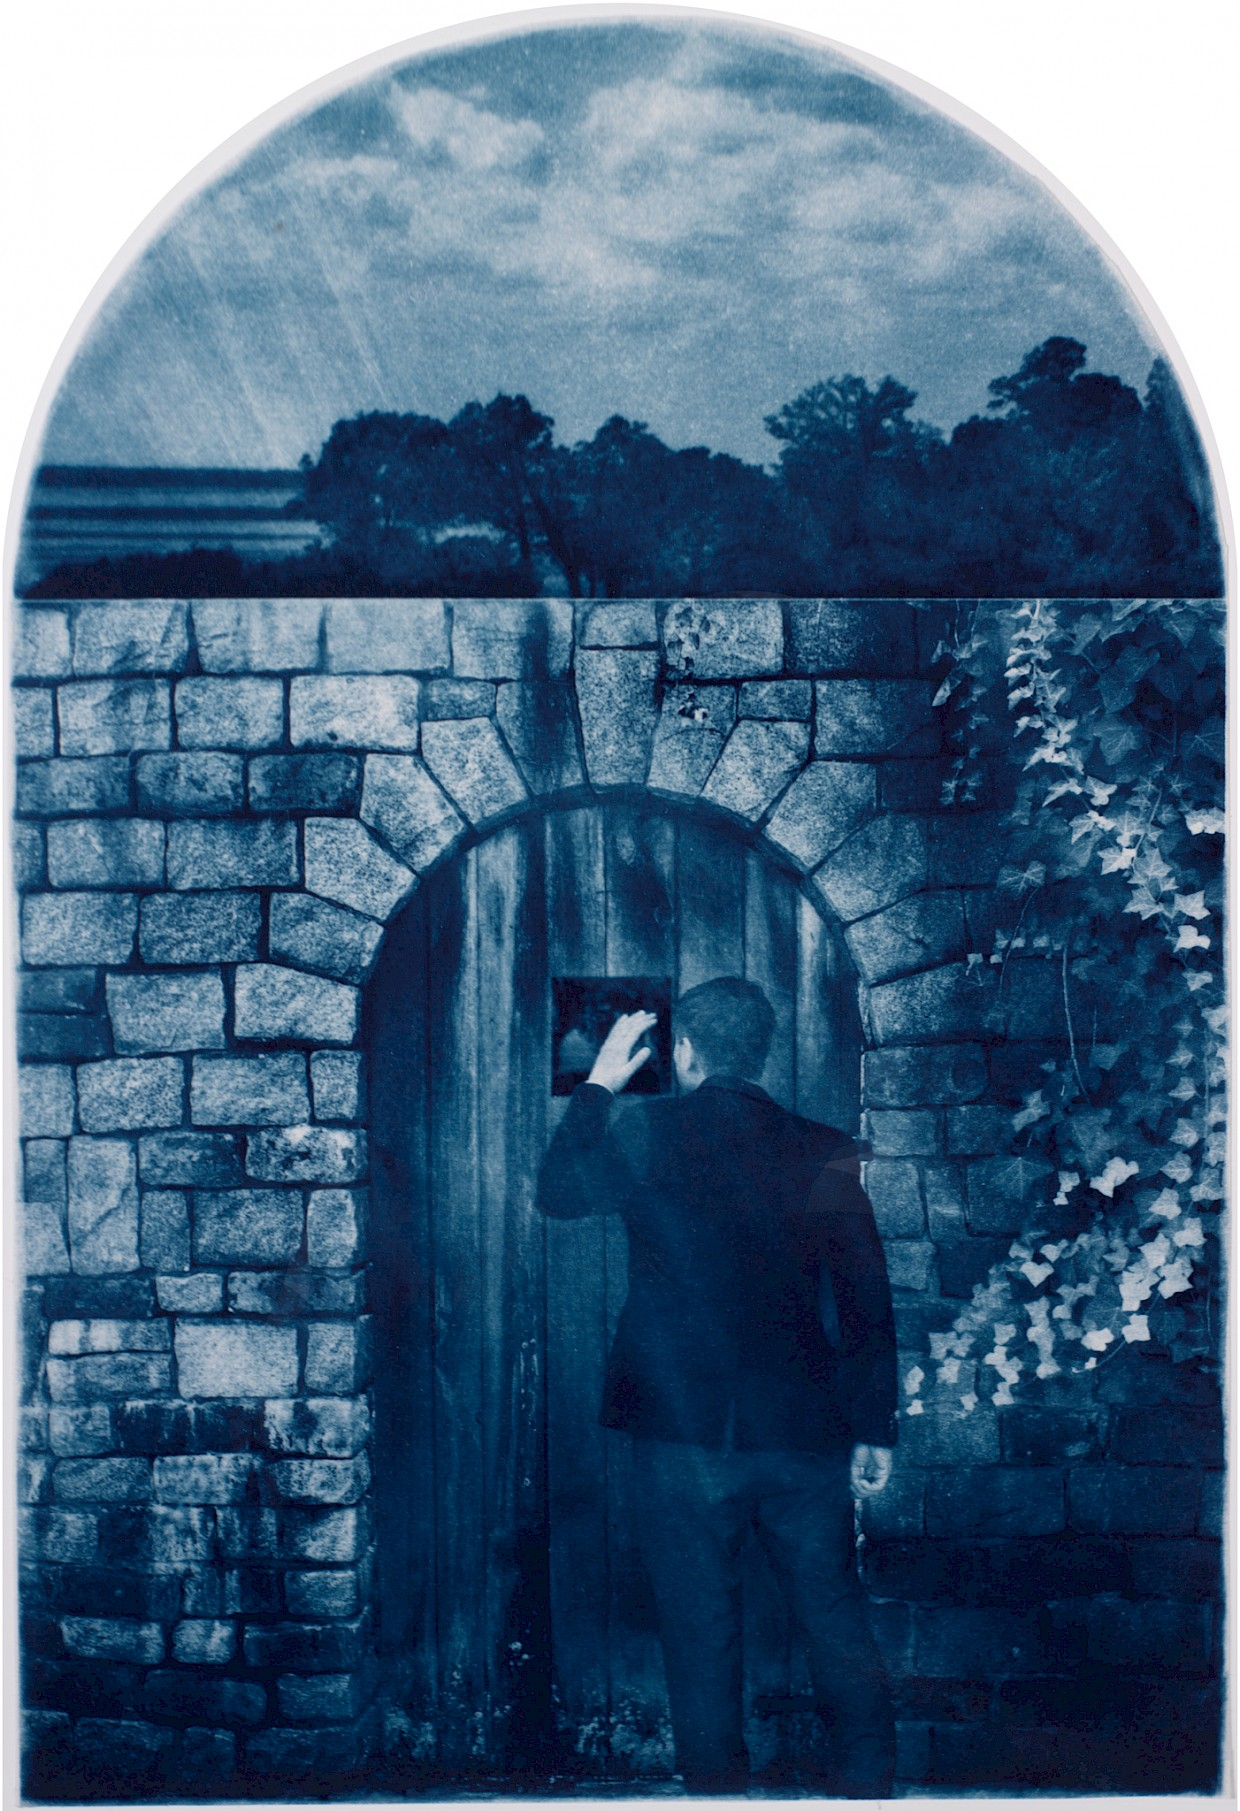 man in front of locked gate and he peers through a peep hole to the landscape beyond